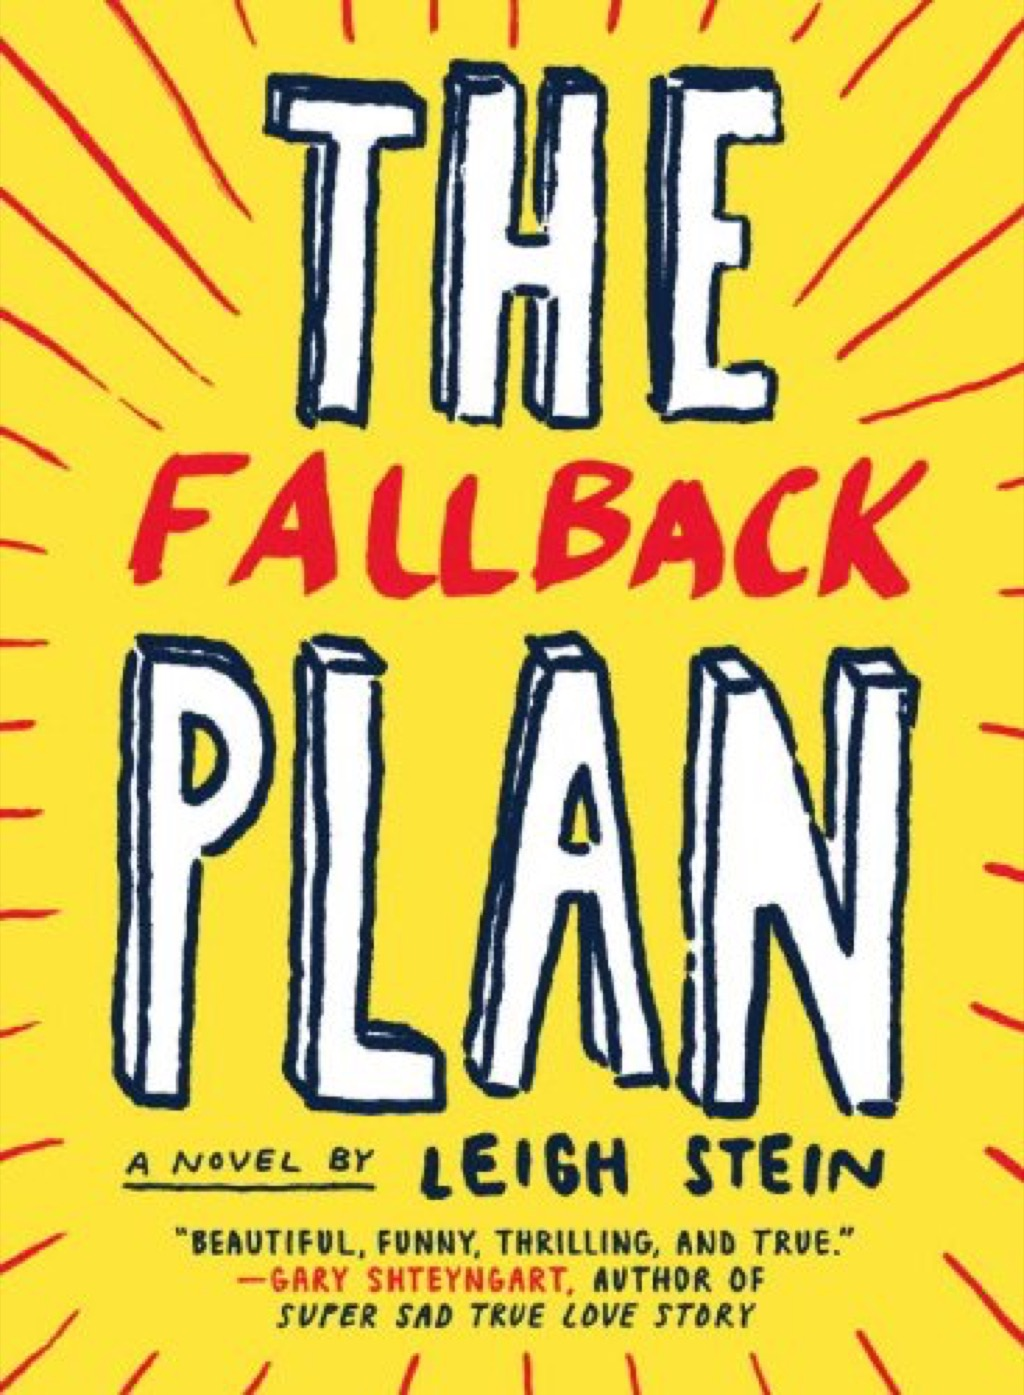 The Fallback Plan by Leigh Stein